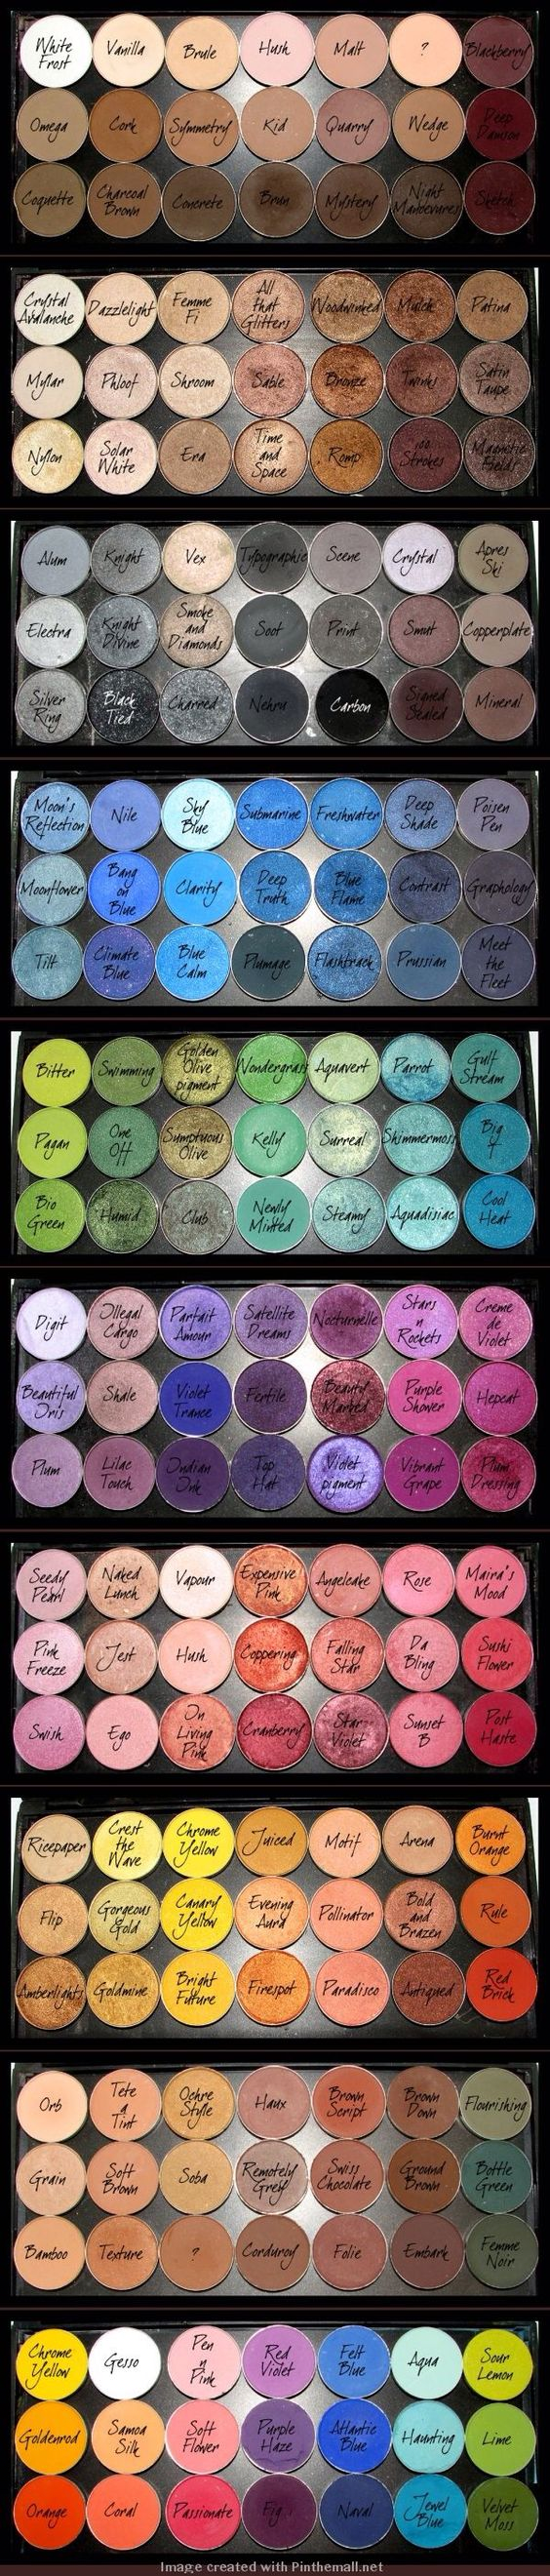 *.* Reference for MAC eye-shadow pots.